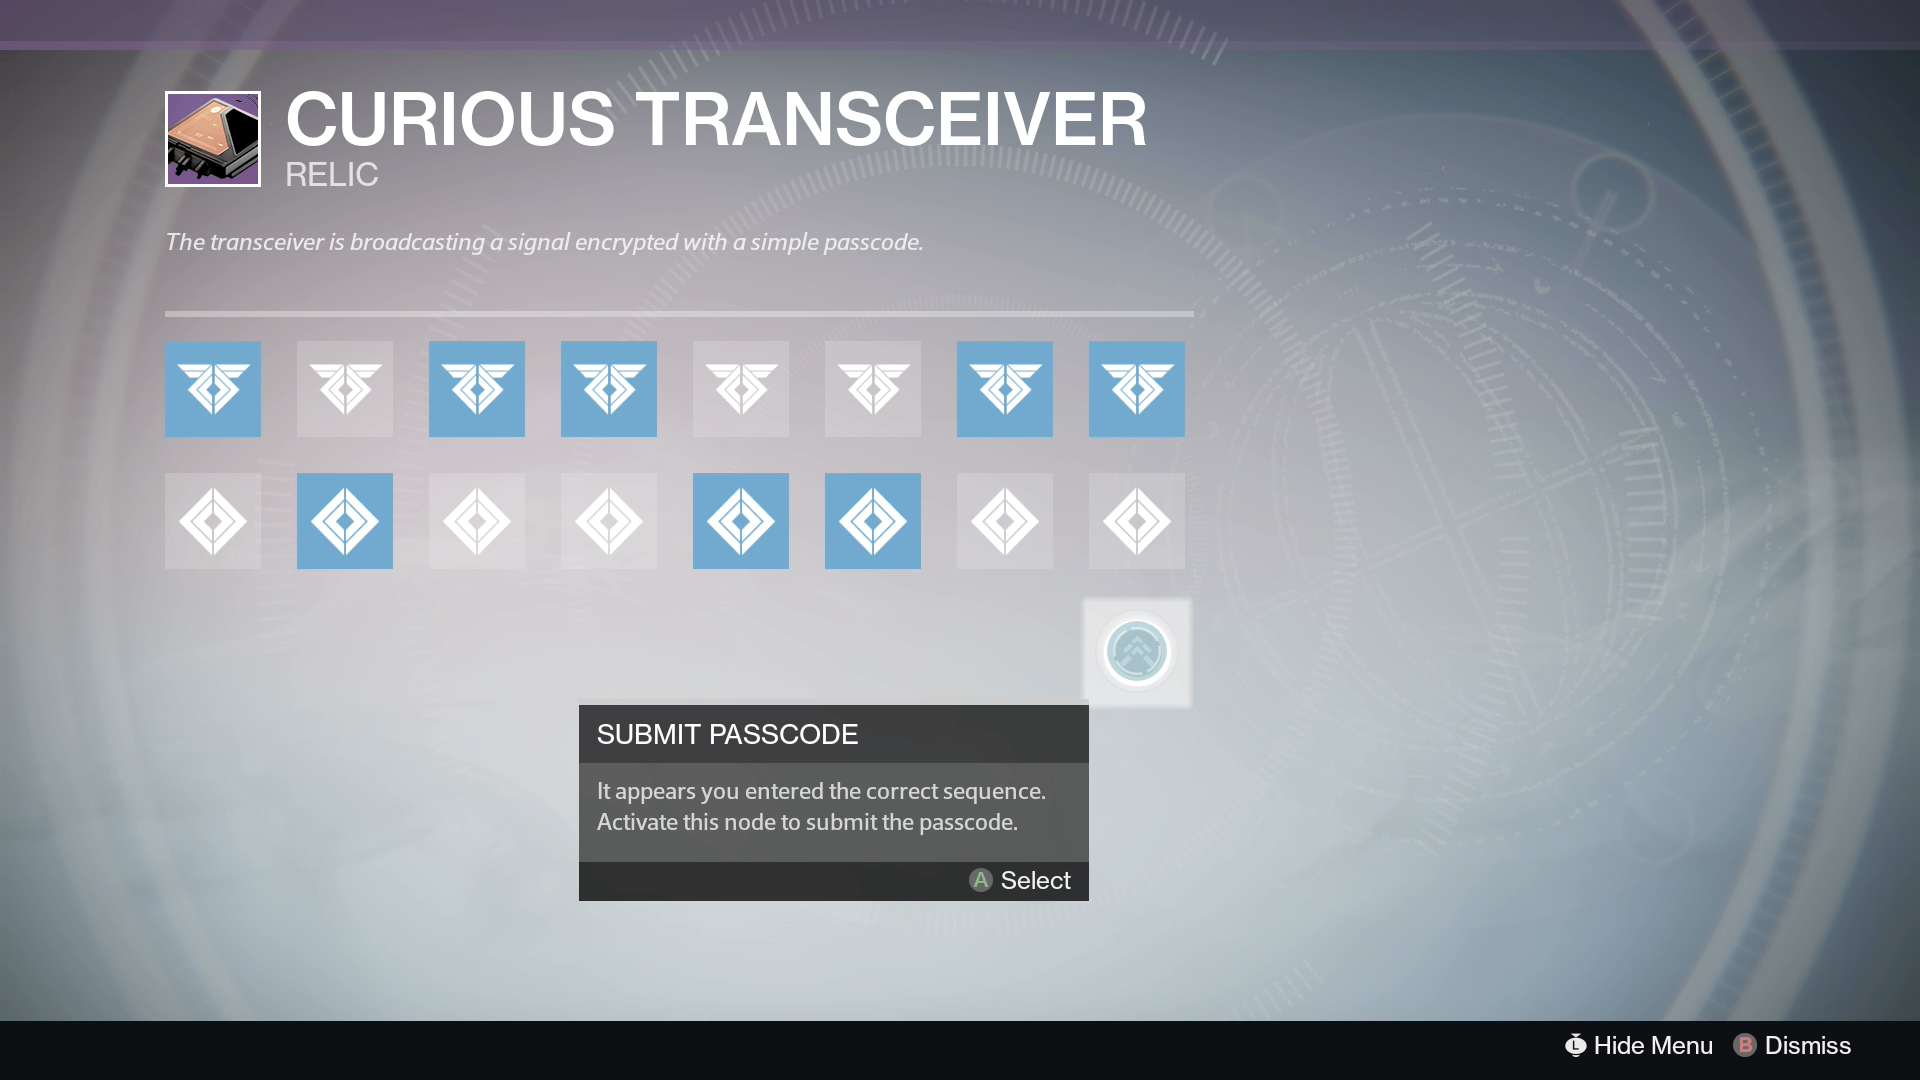 Destiny Curious Transceiver Code 2